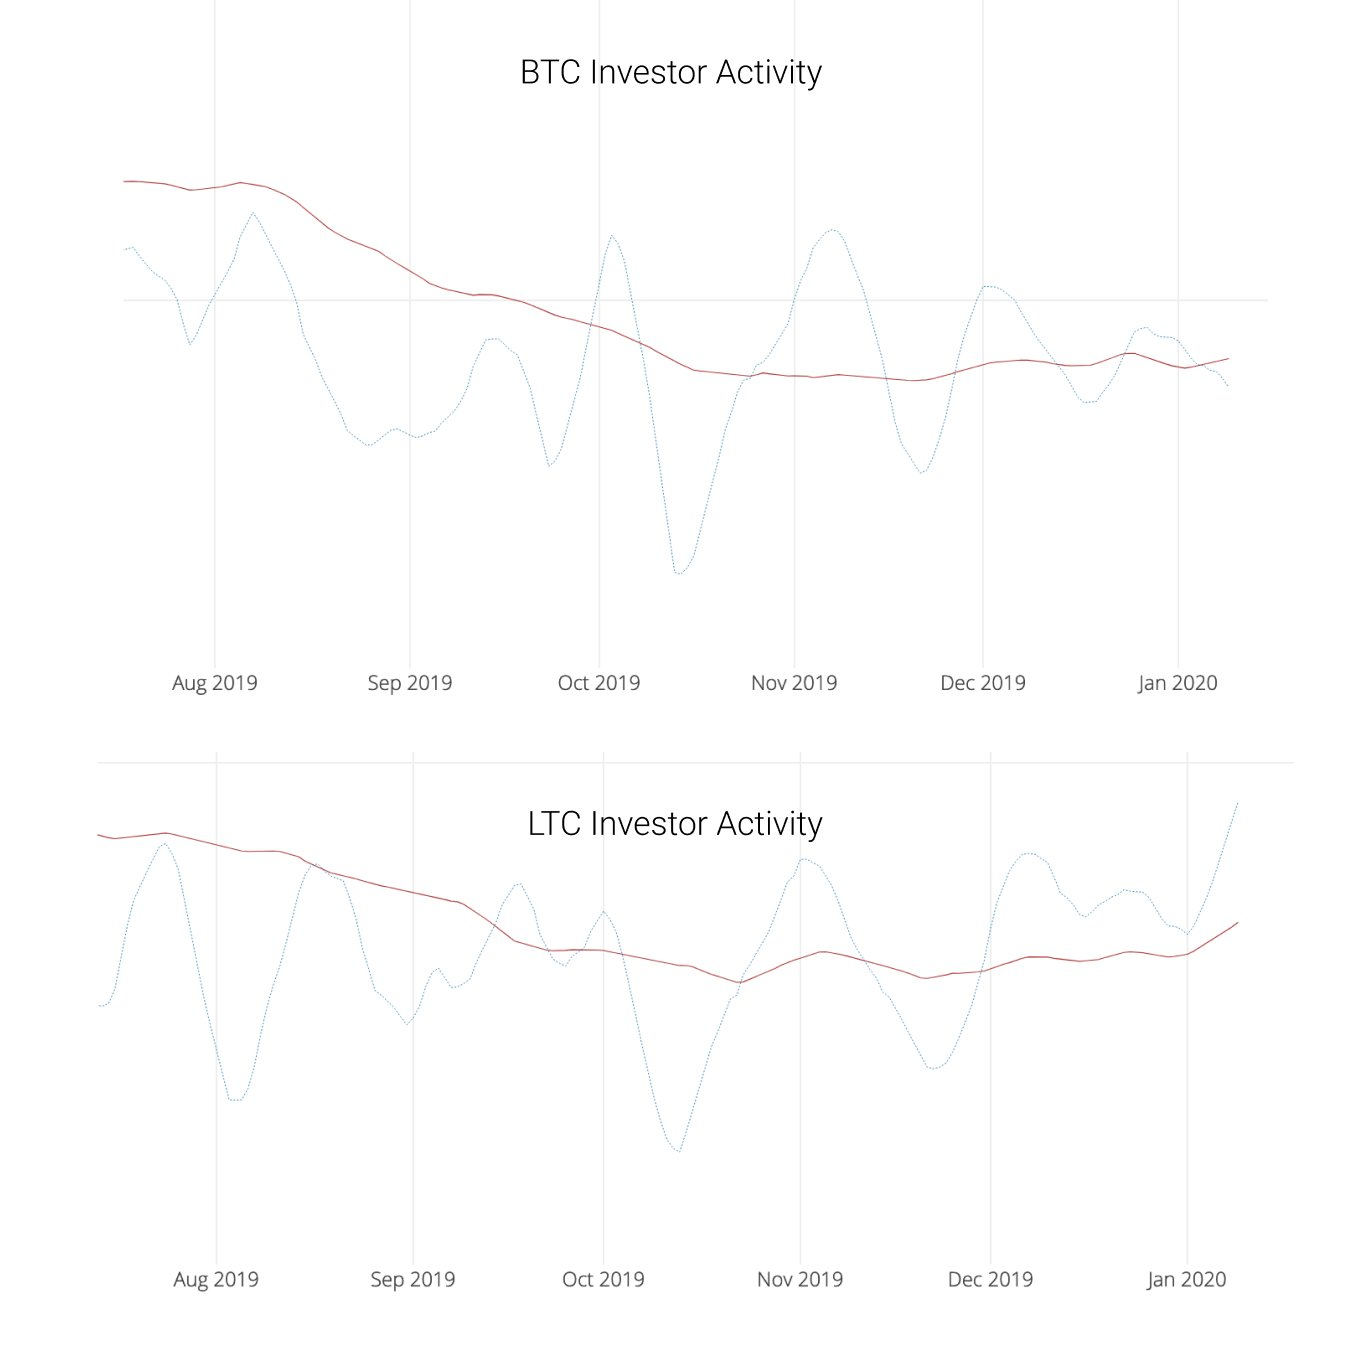 Litecoin and Bitcoin Investor Activity